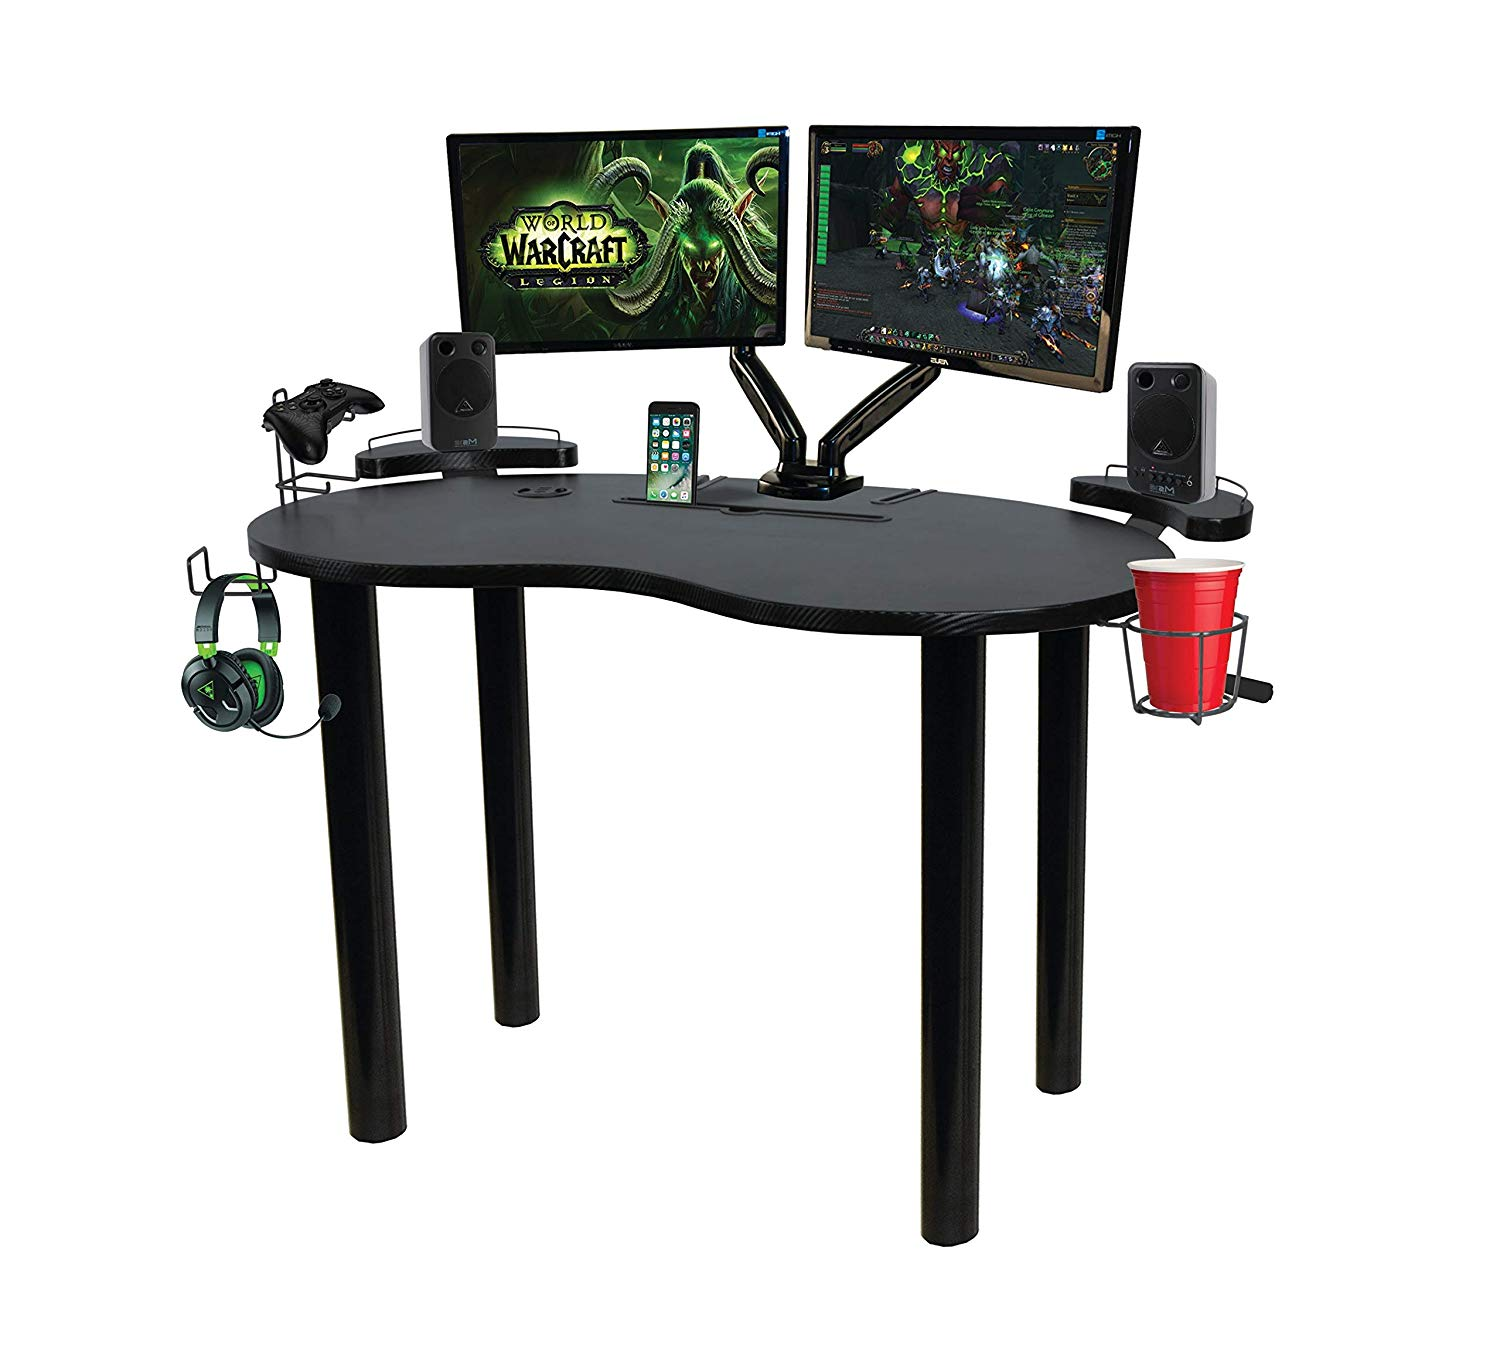 Gaming Desk, Black Color, Carbon-Fiber Texture Laminate Surface, Powder-coated, Steel Legs, Wire Storage Basket, Space Storage, Bundle with Our Expert Guide with Tips for Home Arrangement